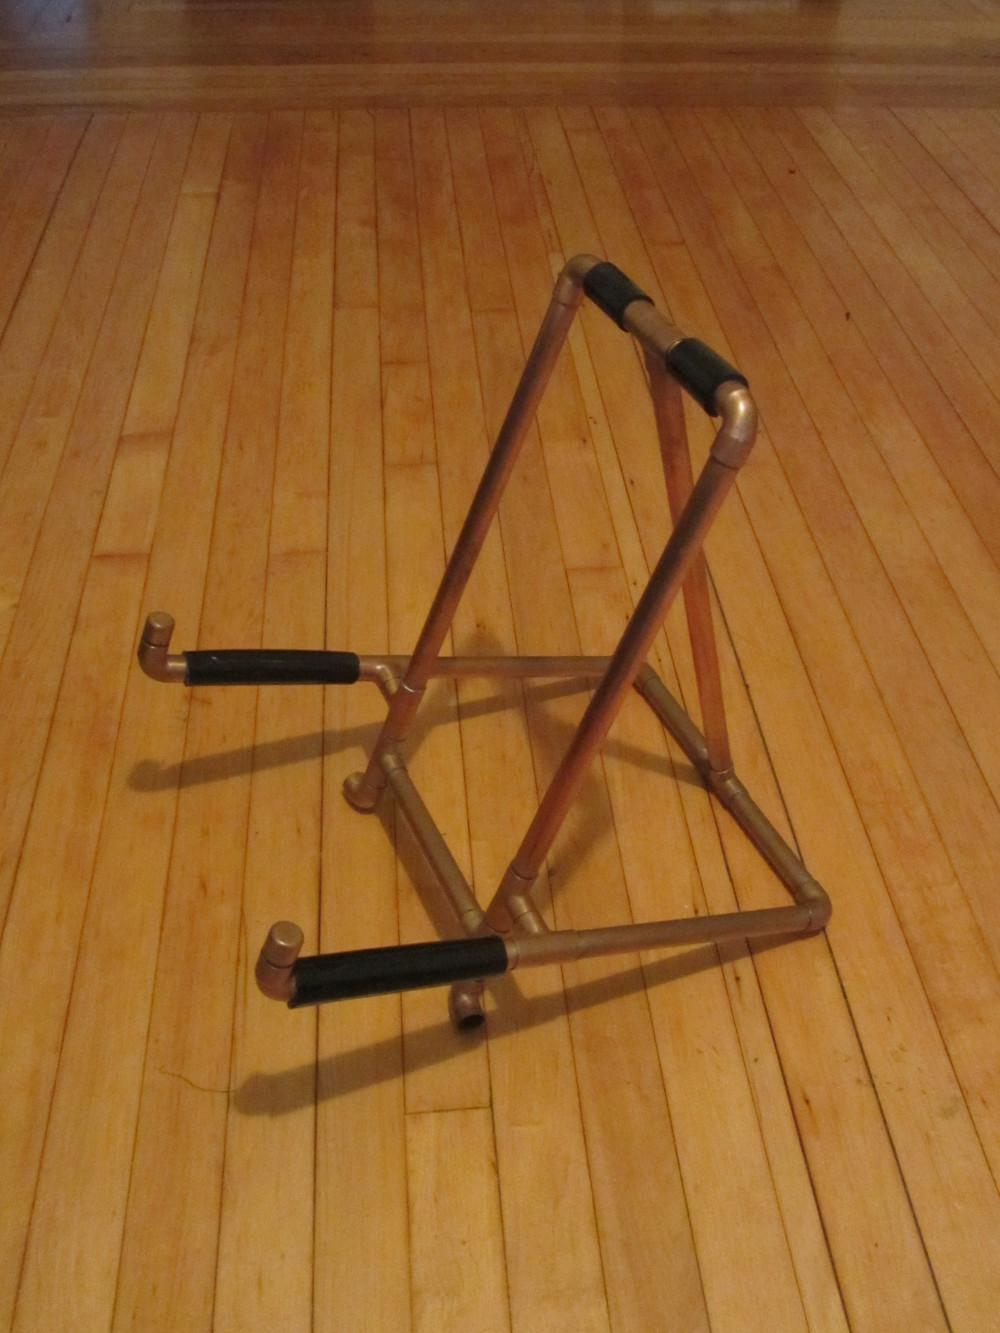 guitar-stand-01